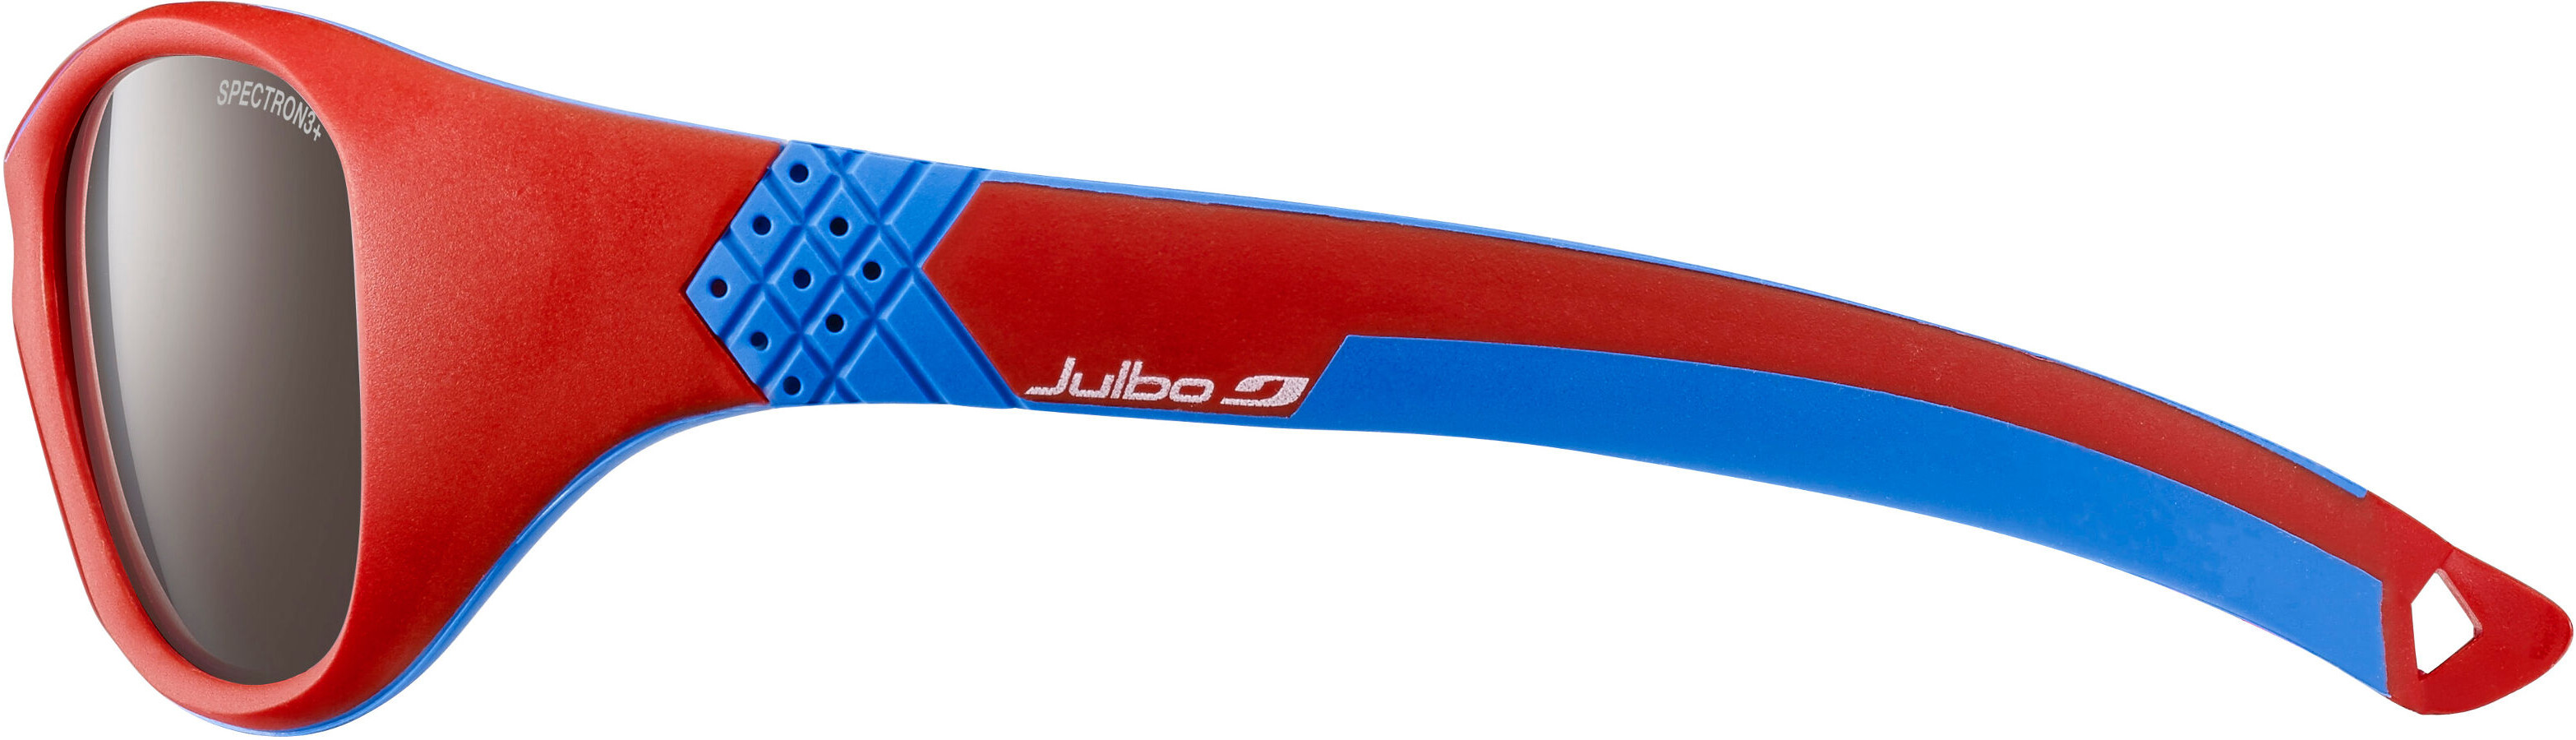 64dd532a6cb4 Julbo Solan Spectron 3+ Glasses Children 4-6Y red blue at Addnature ...